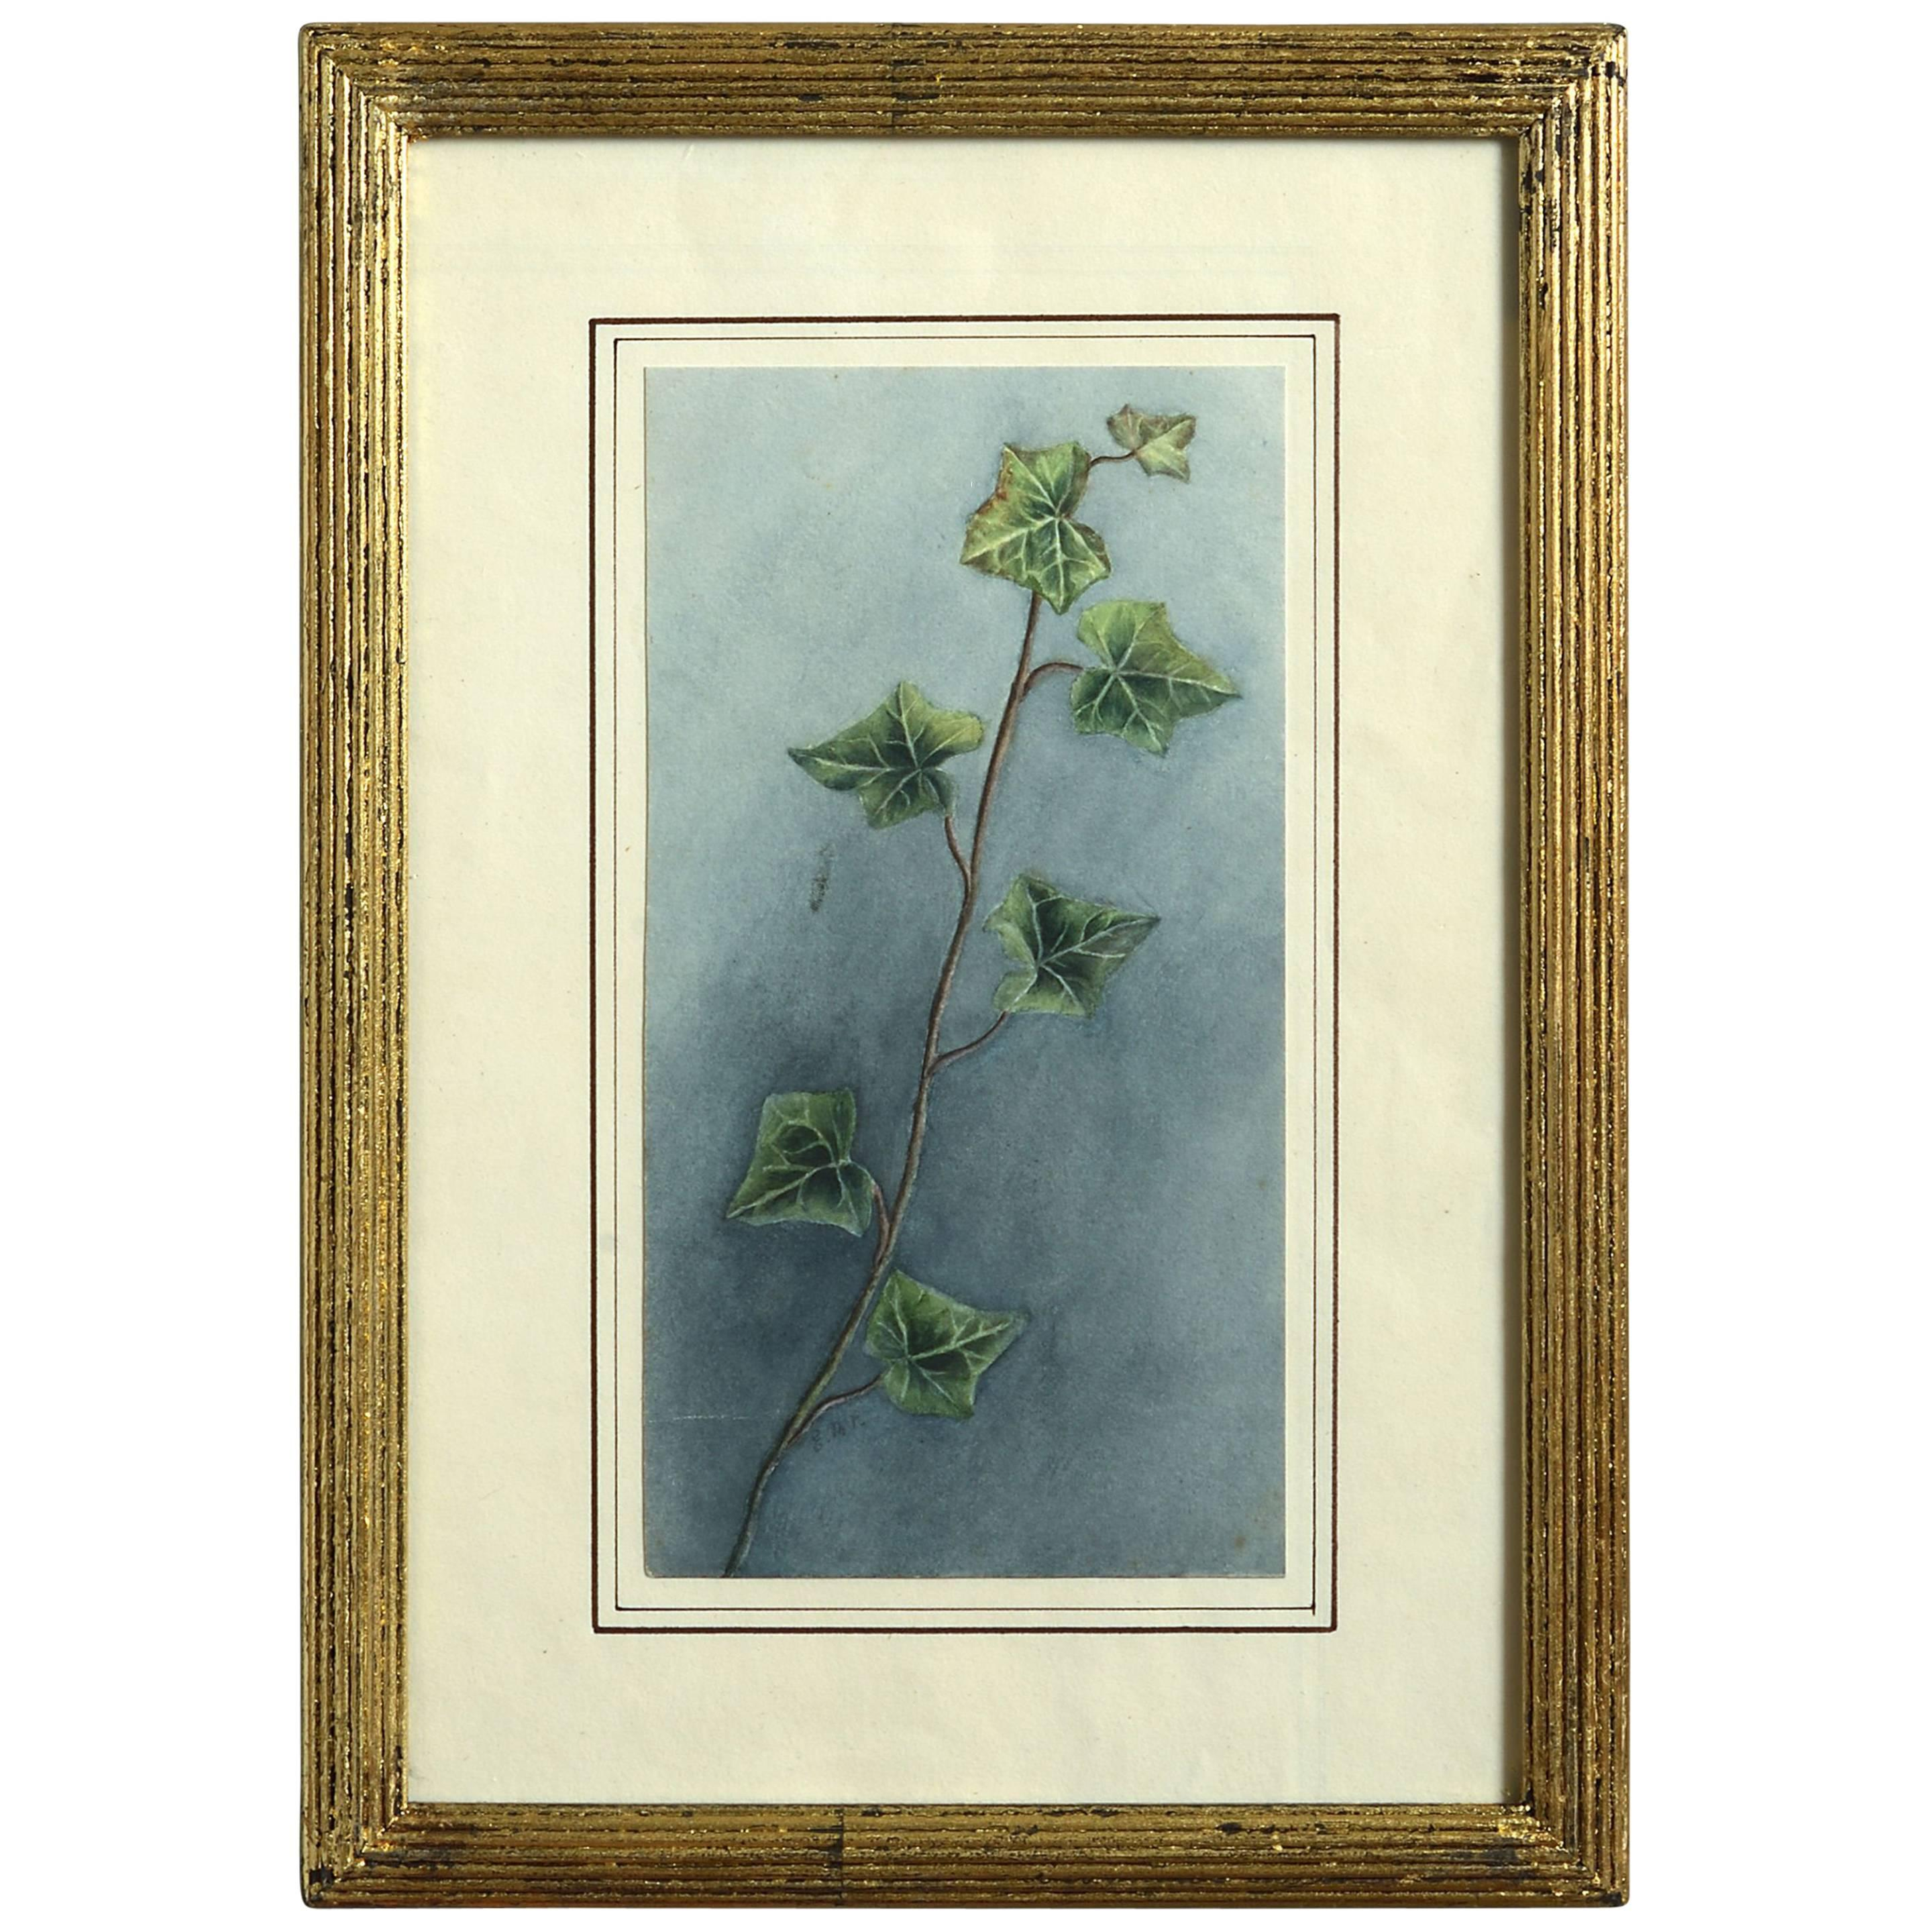 Late 19th Century Watercolor Study of Ivy